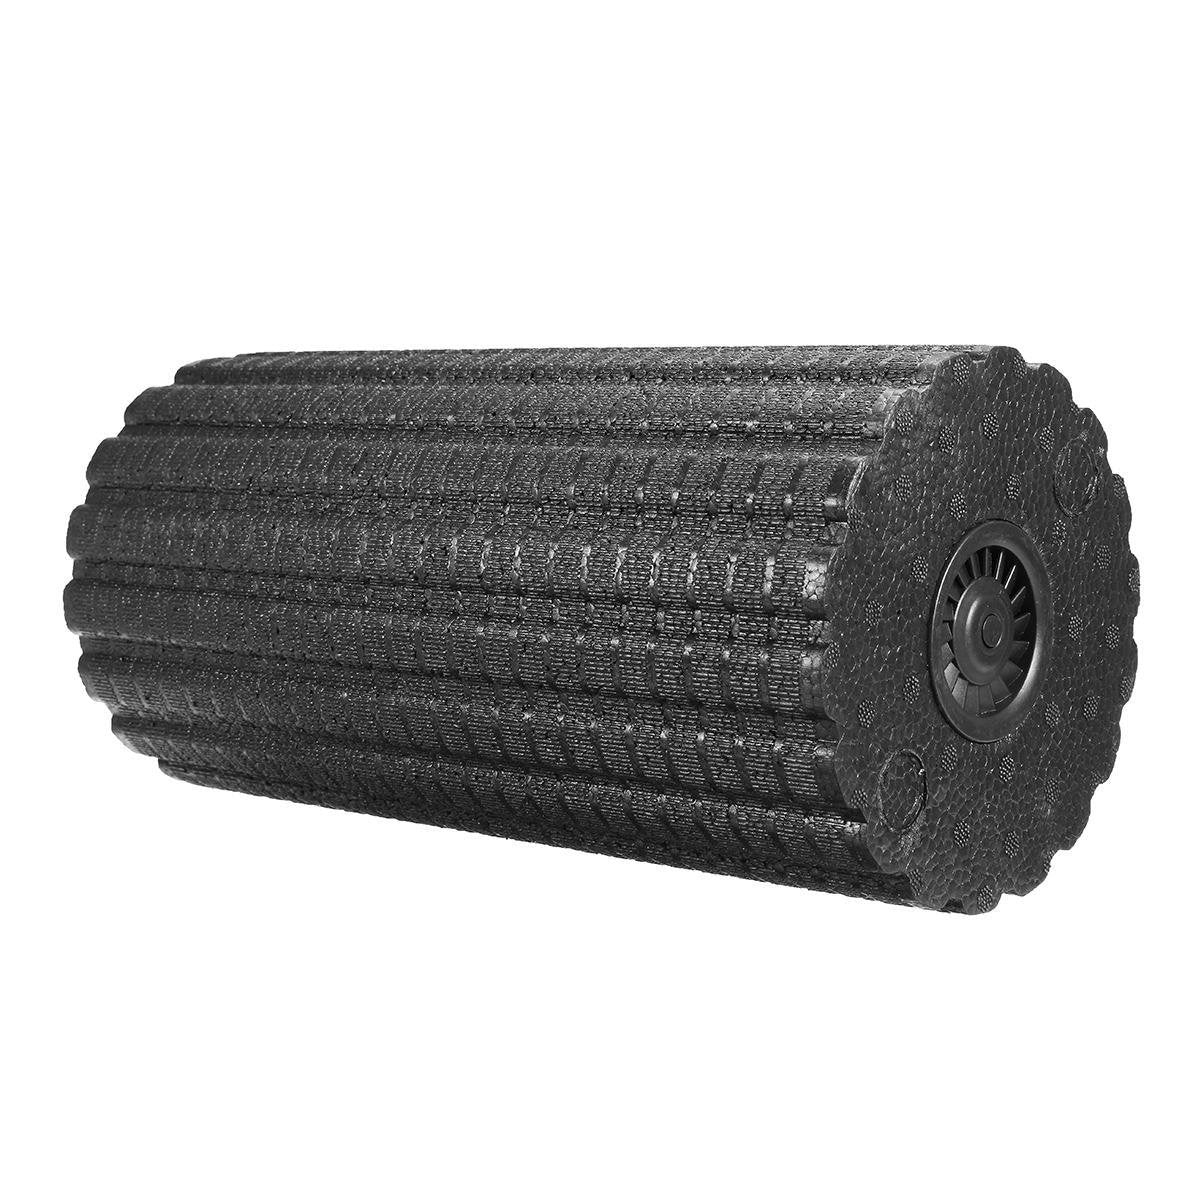 Yoga Massage Electric Vibrating Foam Roller